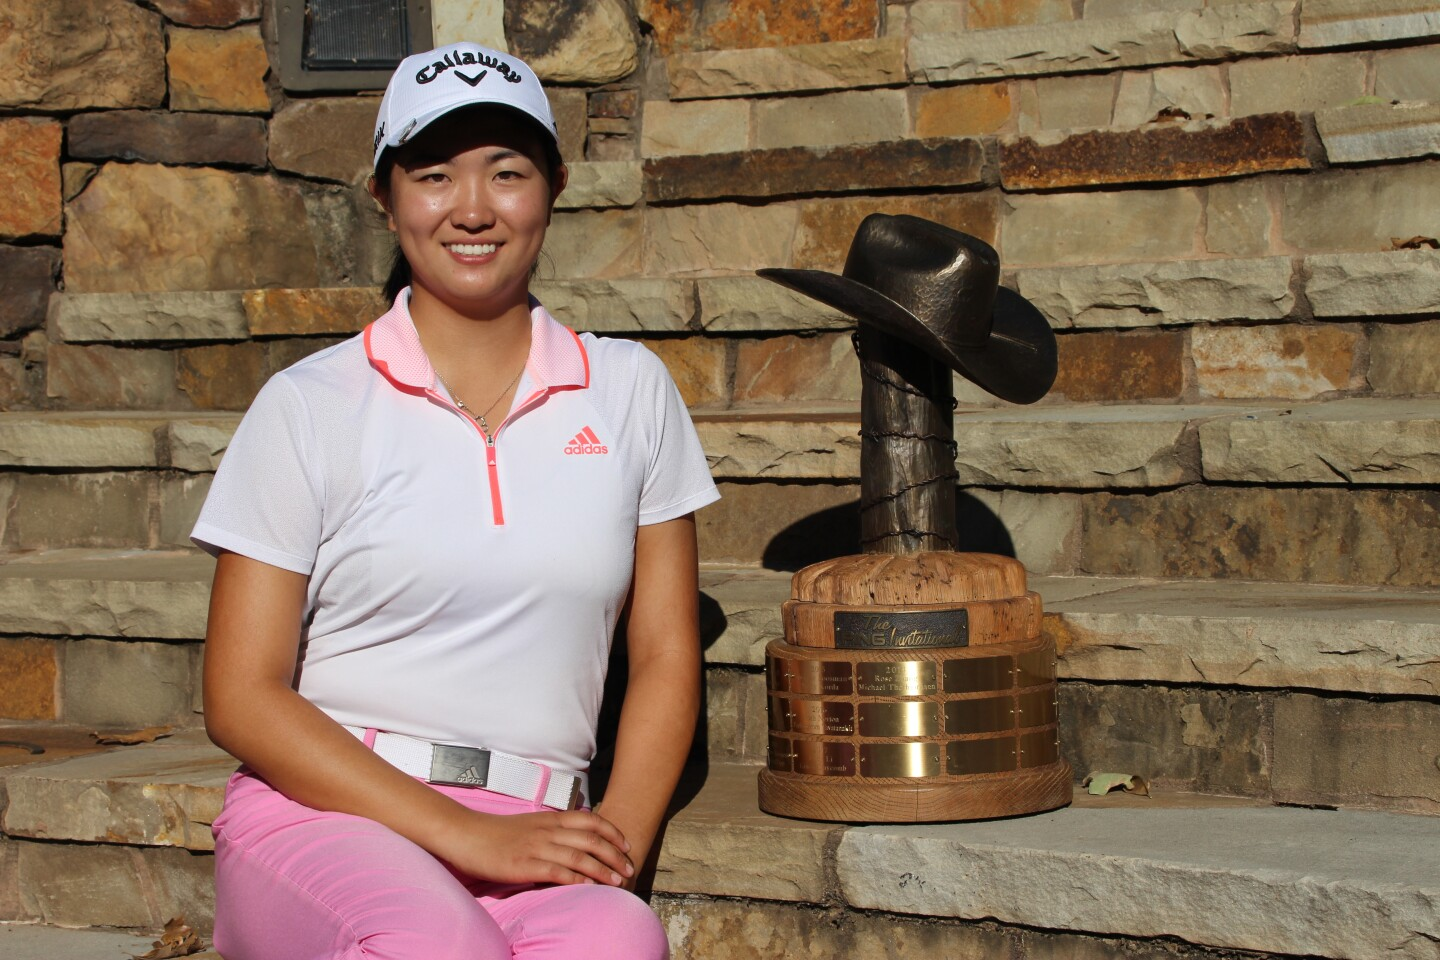 Rose Zhang with perpetual champ trophy - Award Ceremony - The PING Invitational - 2020 (7).JPG